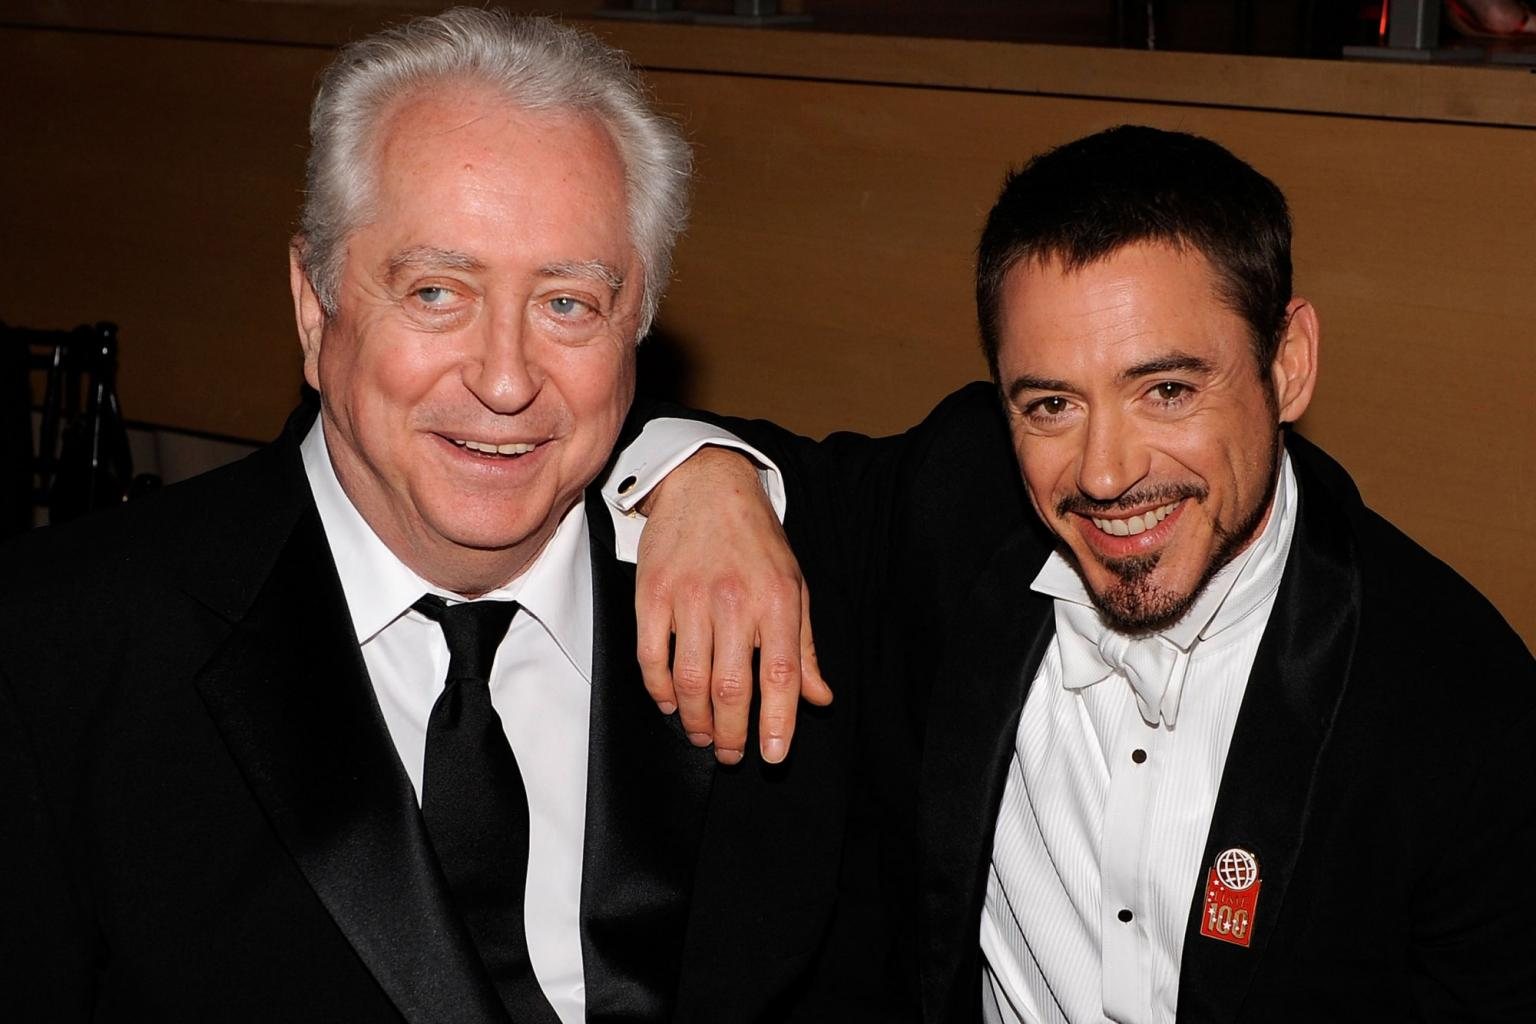 The Renegade: Robert Downey Sr. On His Classic Films